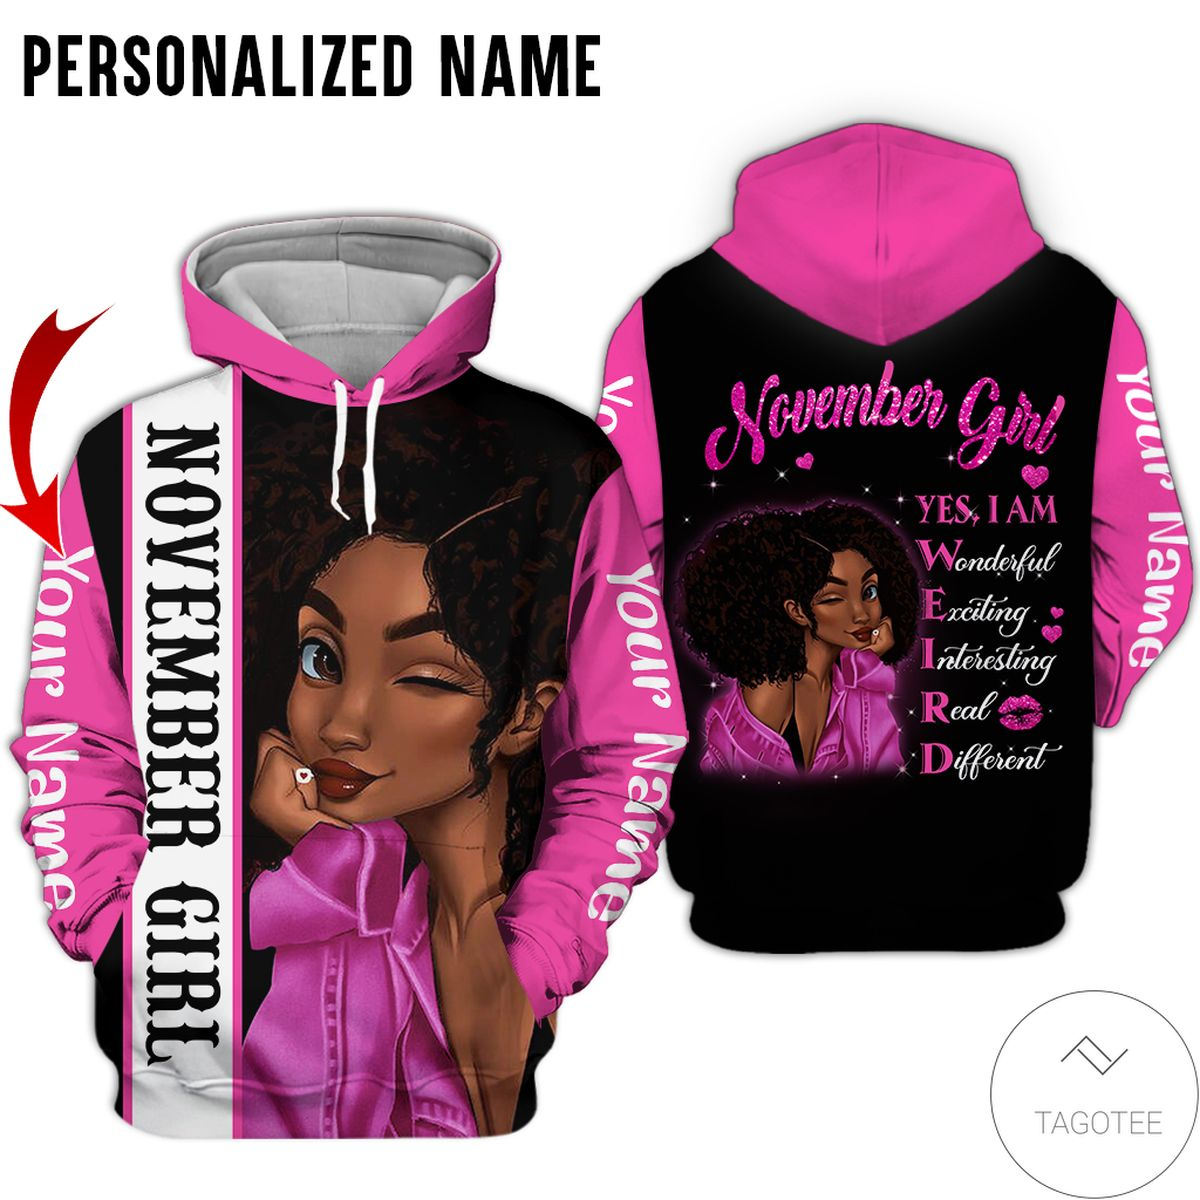 Unisex Personalized Name November Girl Yes I Am All Over Print Hoodie